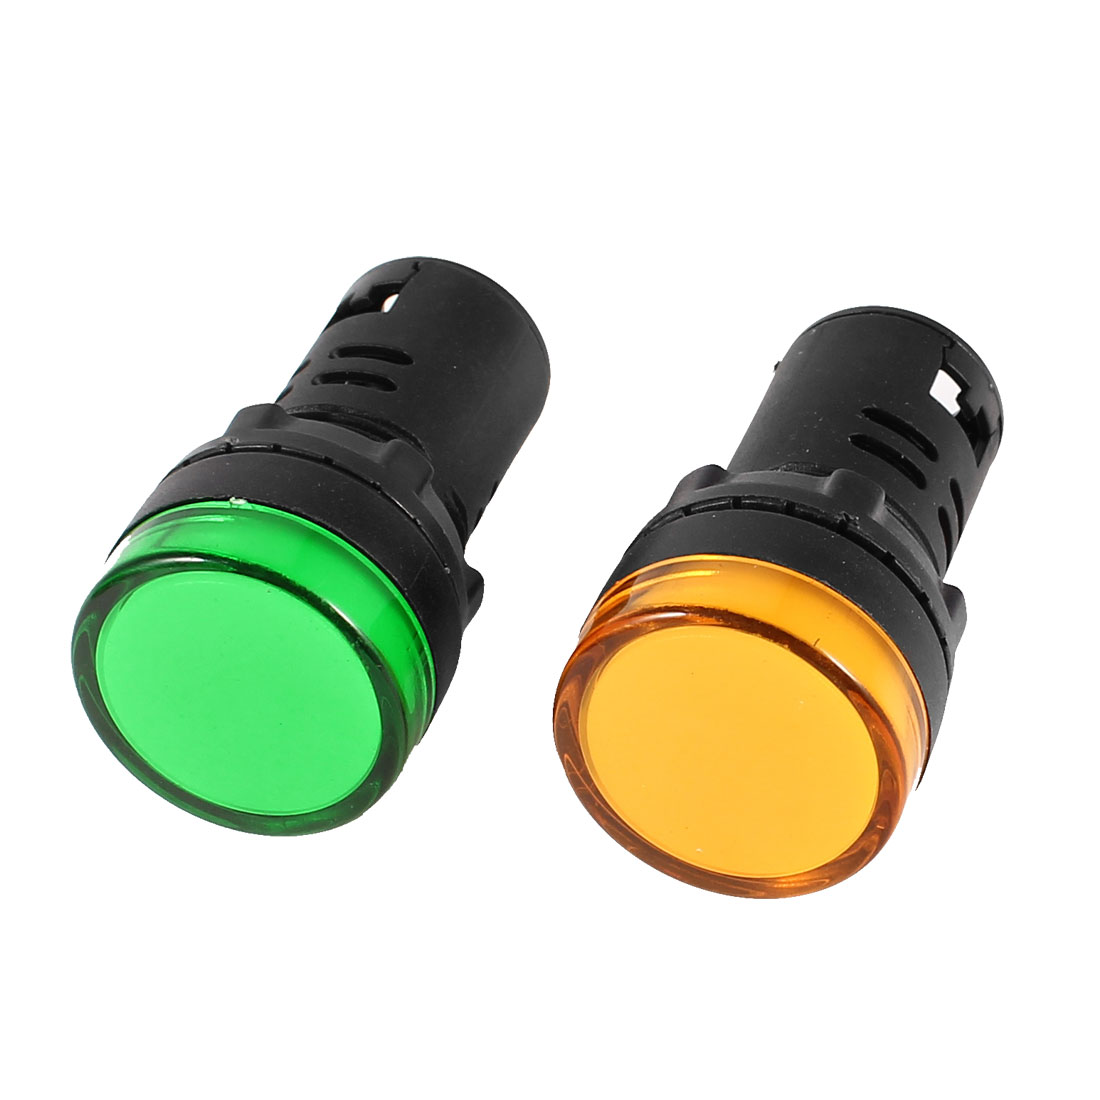 2 Pcs AD16-22D/S Green Yellow LED Pilot Light Panel Indicator Lamp 22mm AC 220V 20mA